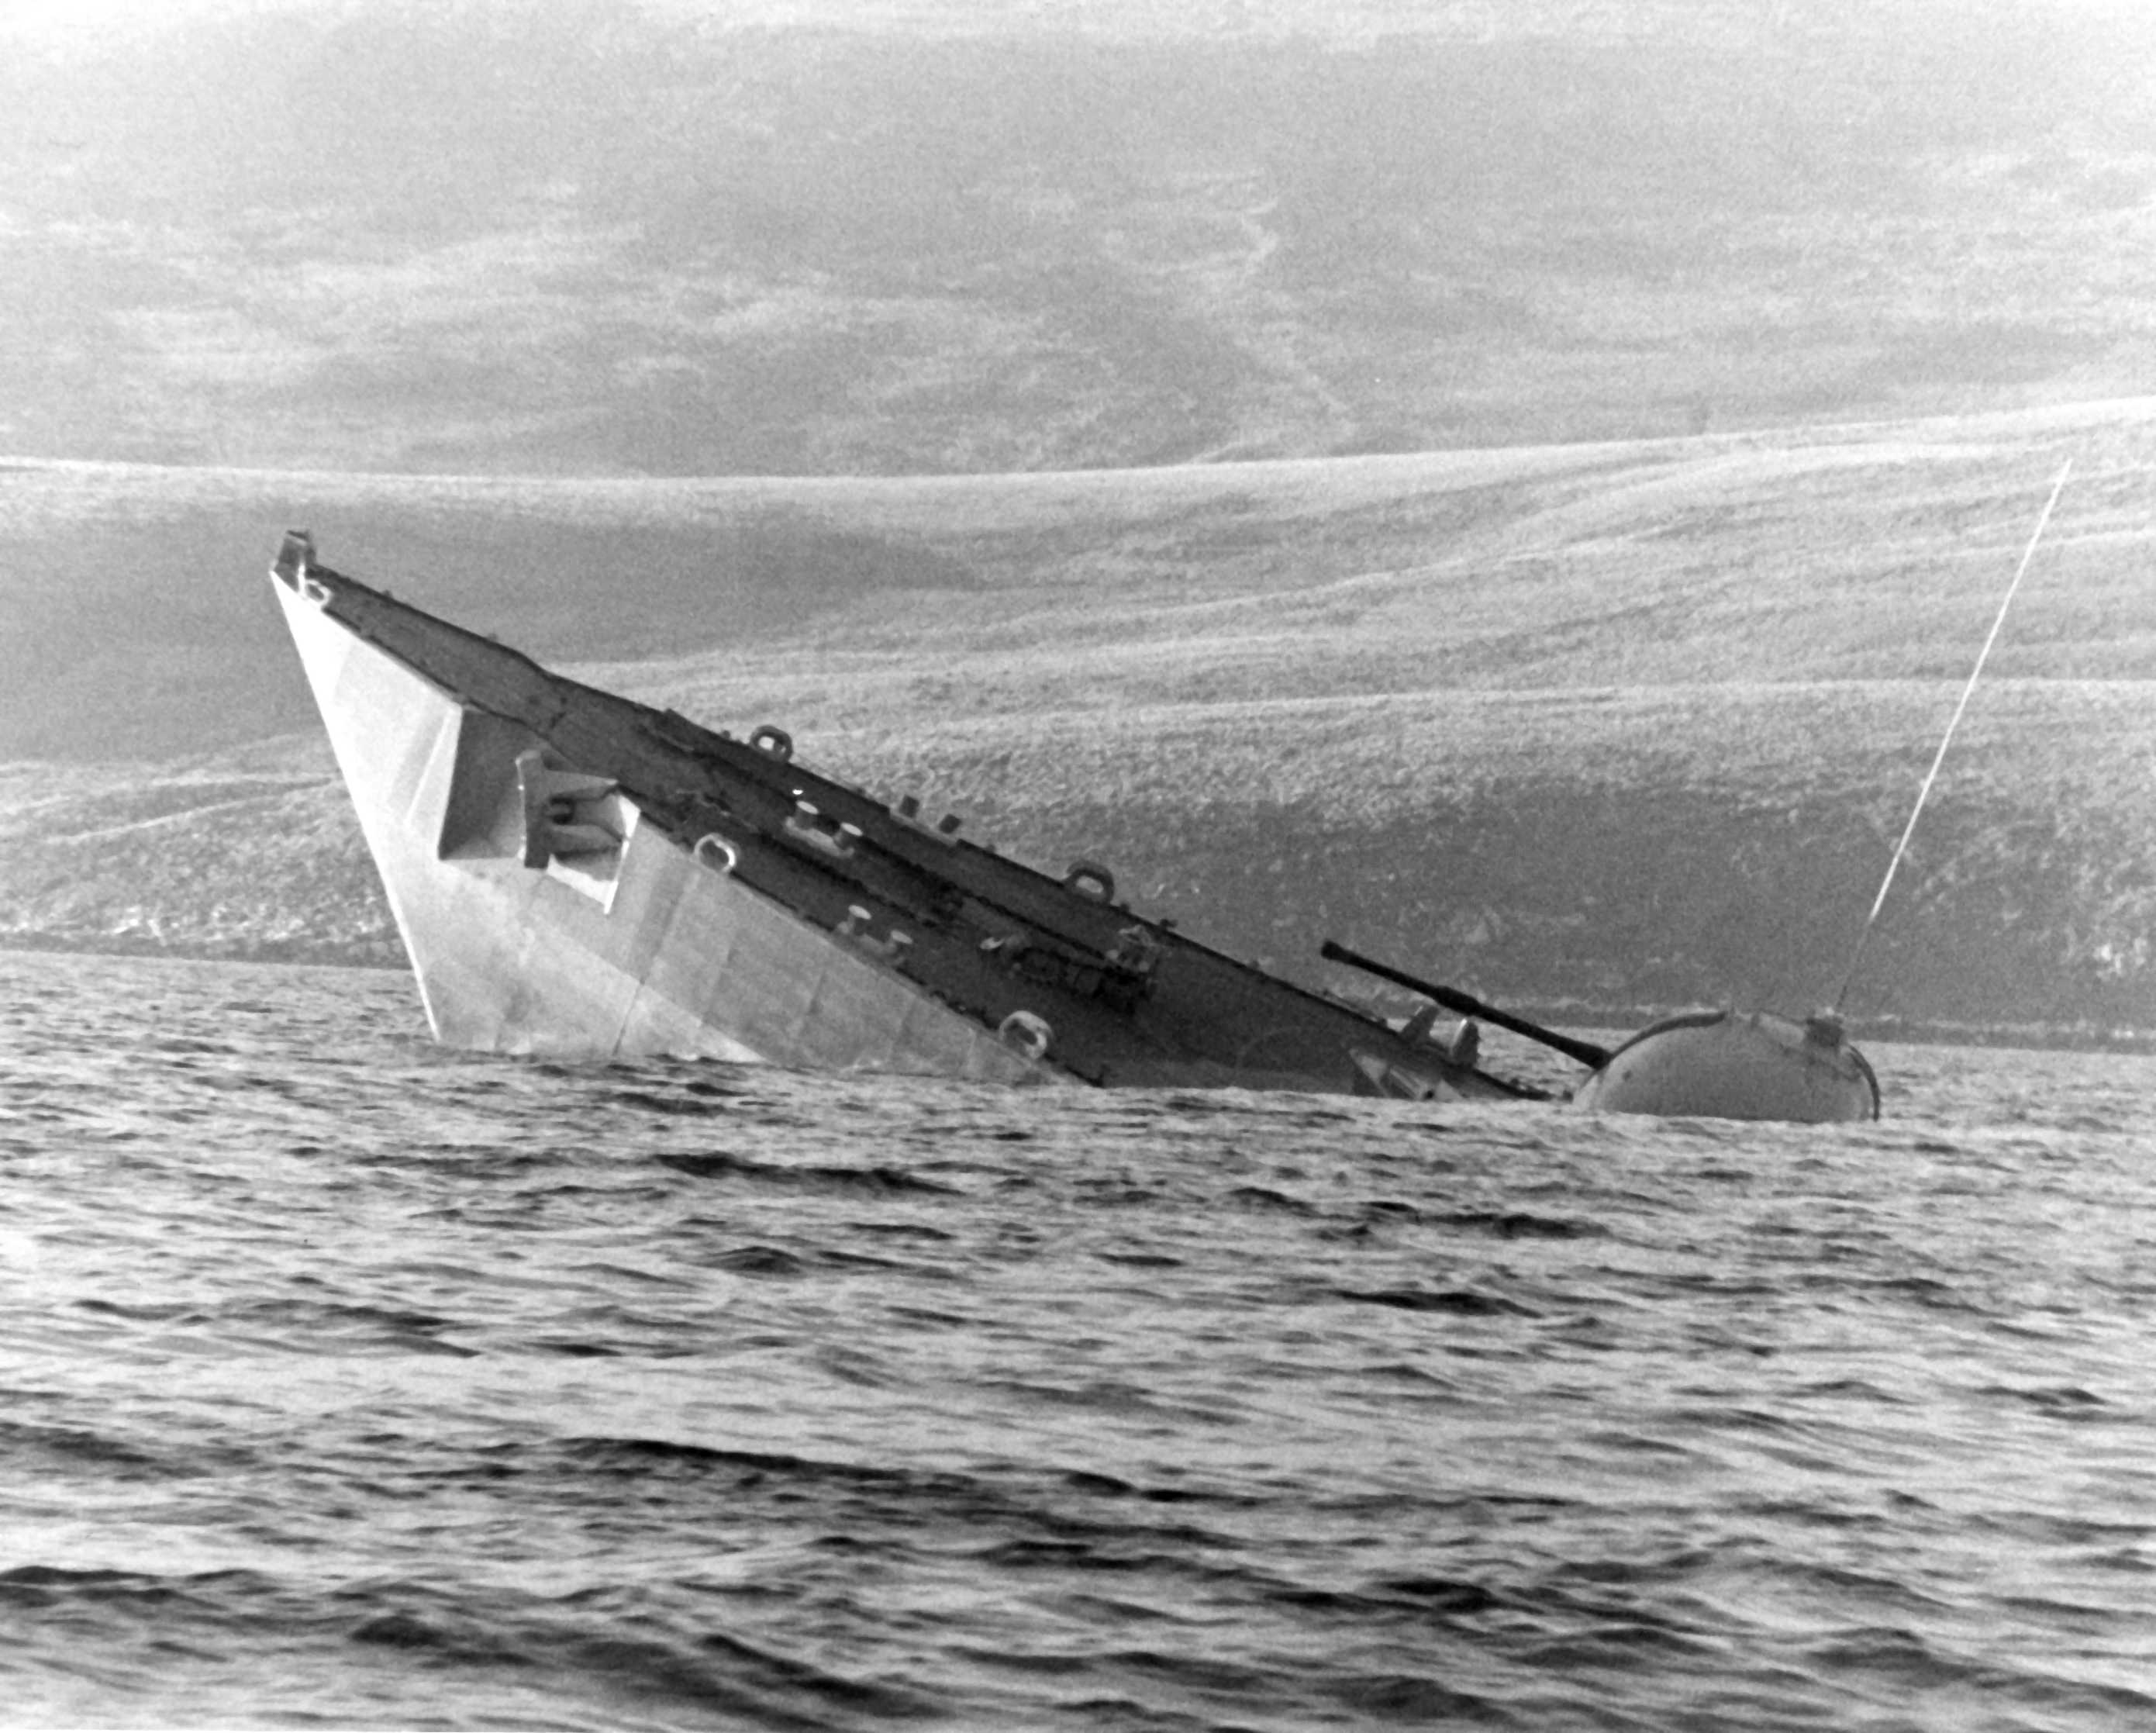 أسلحة صنعت الحدث - صفحة 3 Ship_Sinking_Falklands_Islands_War_HMS_Antelope